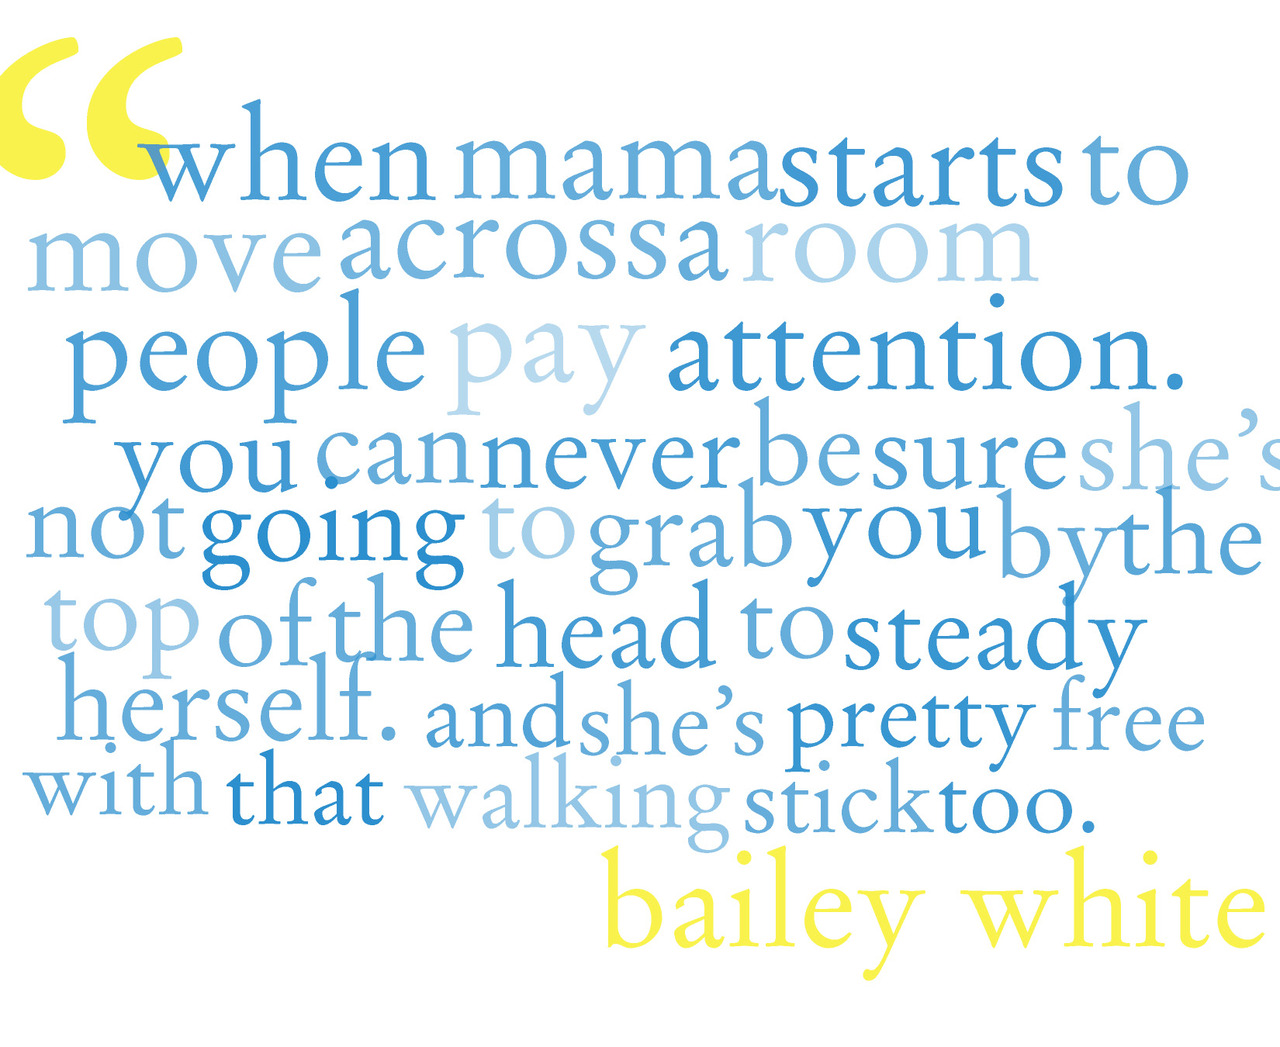 bailey white writes my favorite short stories. this line is from Mama Makes Up Her Mind, which i recommend. (britt original)